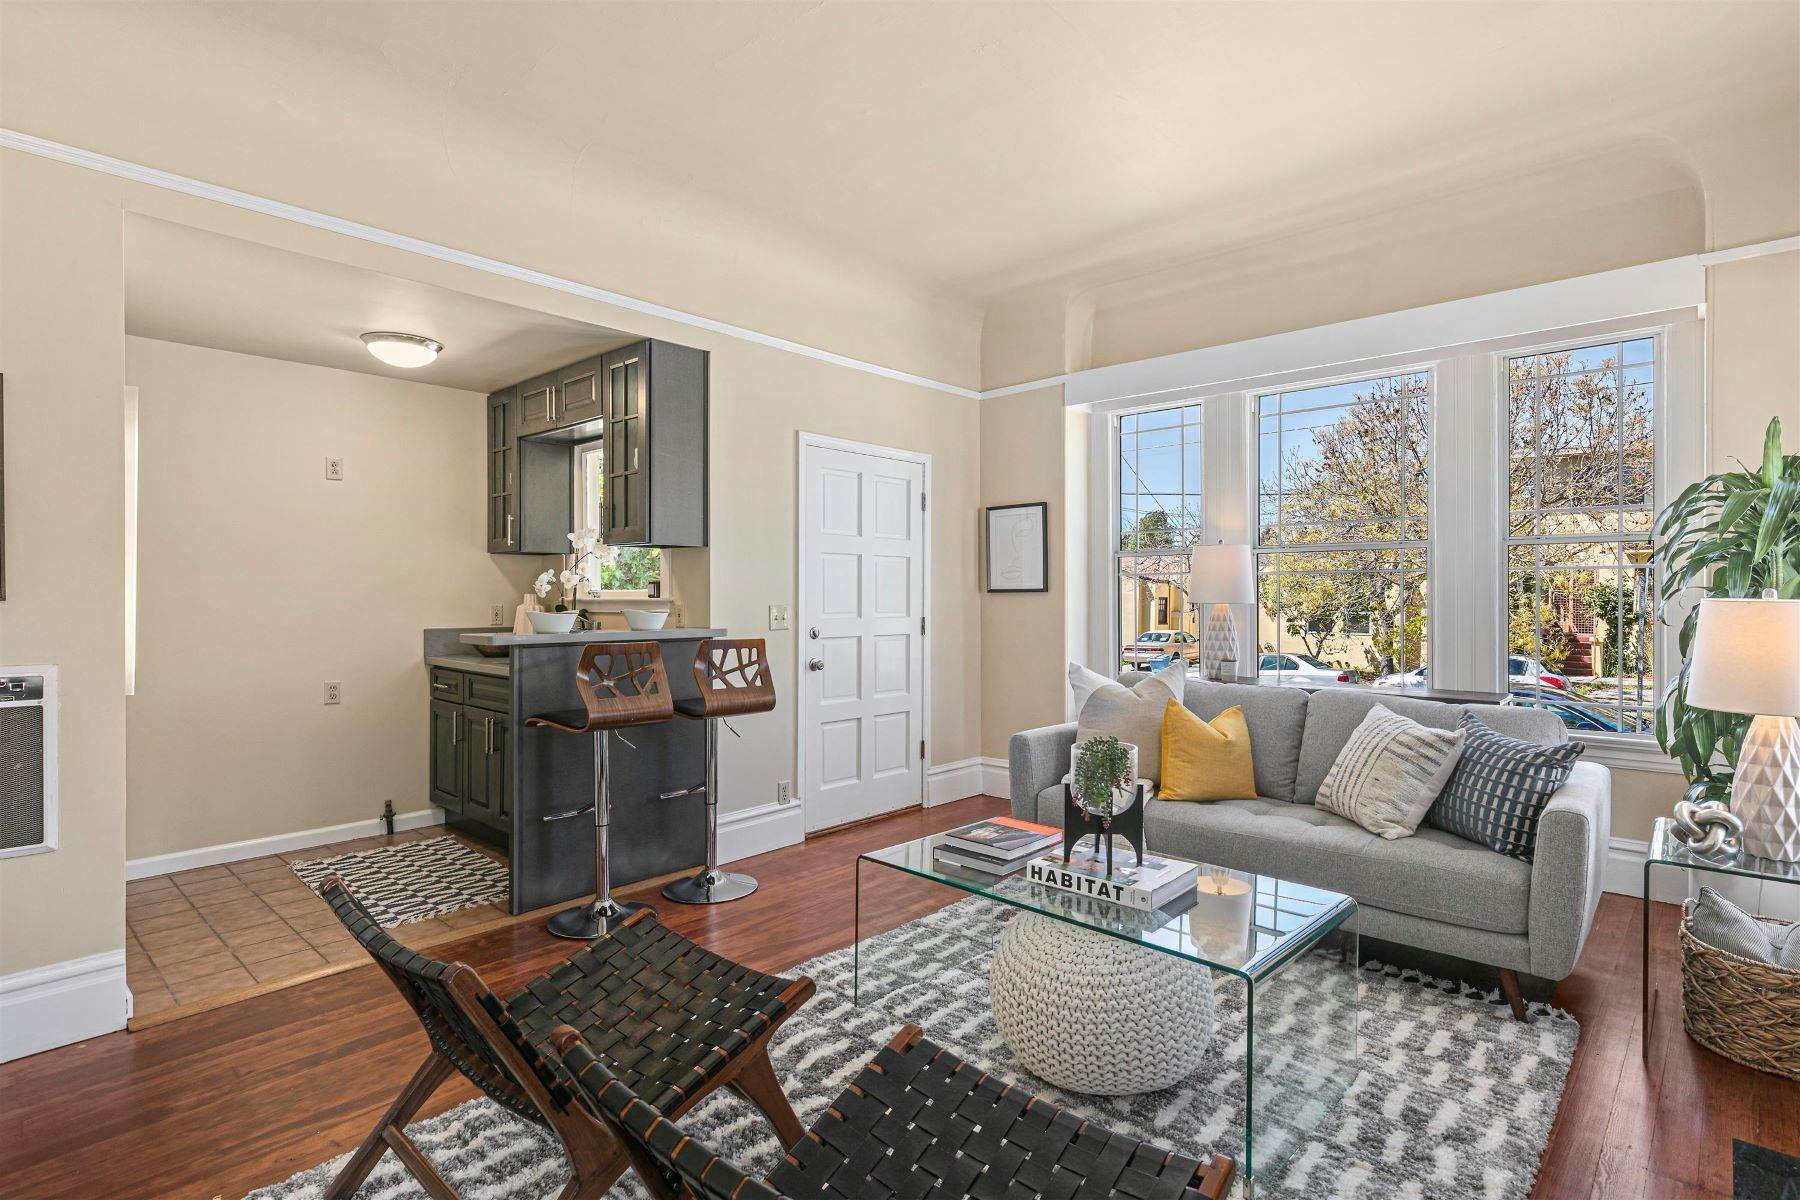 10. Property for Sale at Distinguished Triplex in an Ideal Berkeley Location 2240 Ward Street Berkeley, California 94705 United States